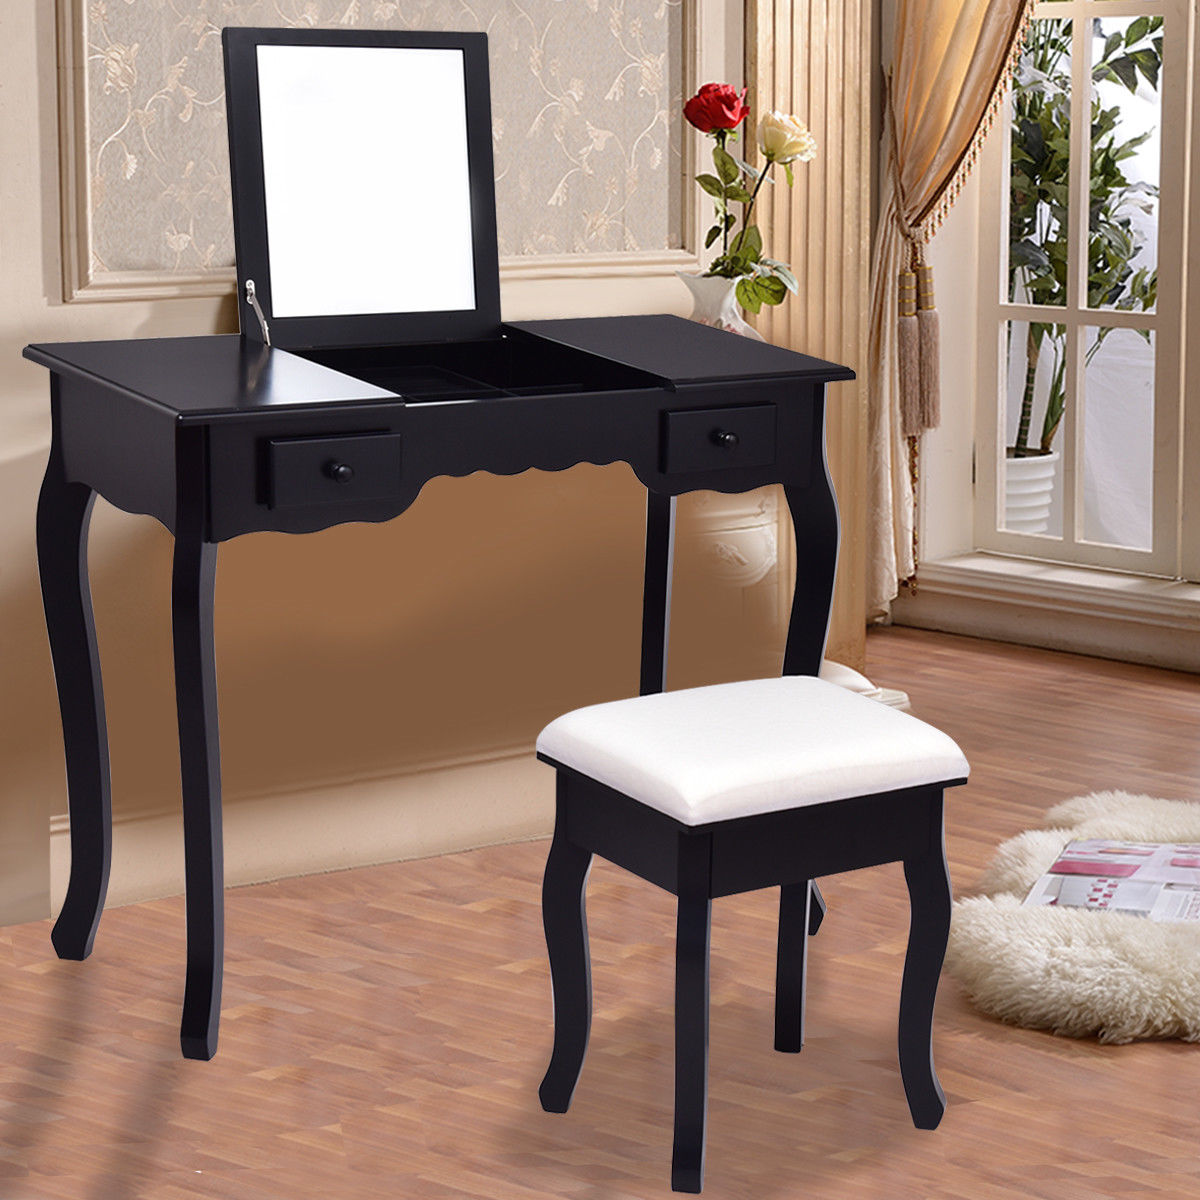 Giantex Modern Vanity Dressing Table Set Mirrored Bathroom Furniture With Stool Table Black Make Up Dresser Desk HW56231BK giantex wood makeup dressing table stool set jewelry desk drawer mirror black home furniture hw52951bk